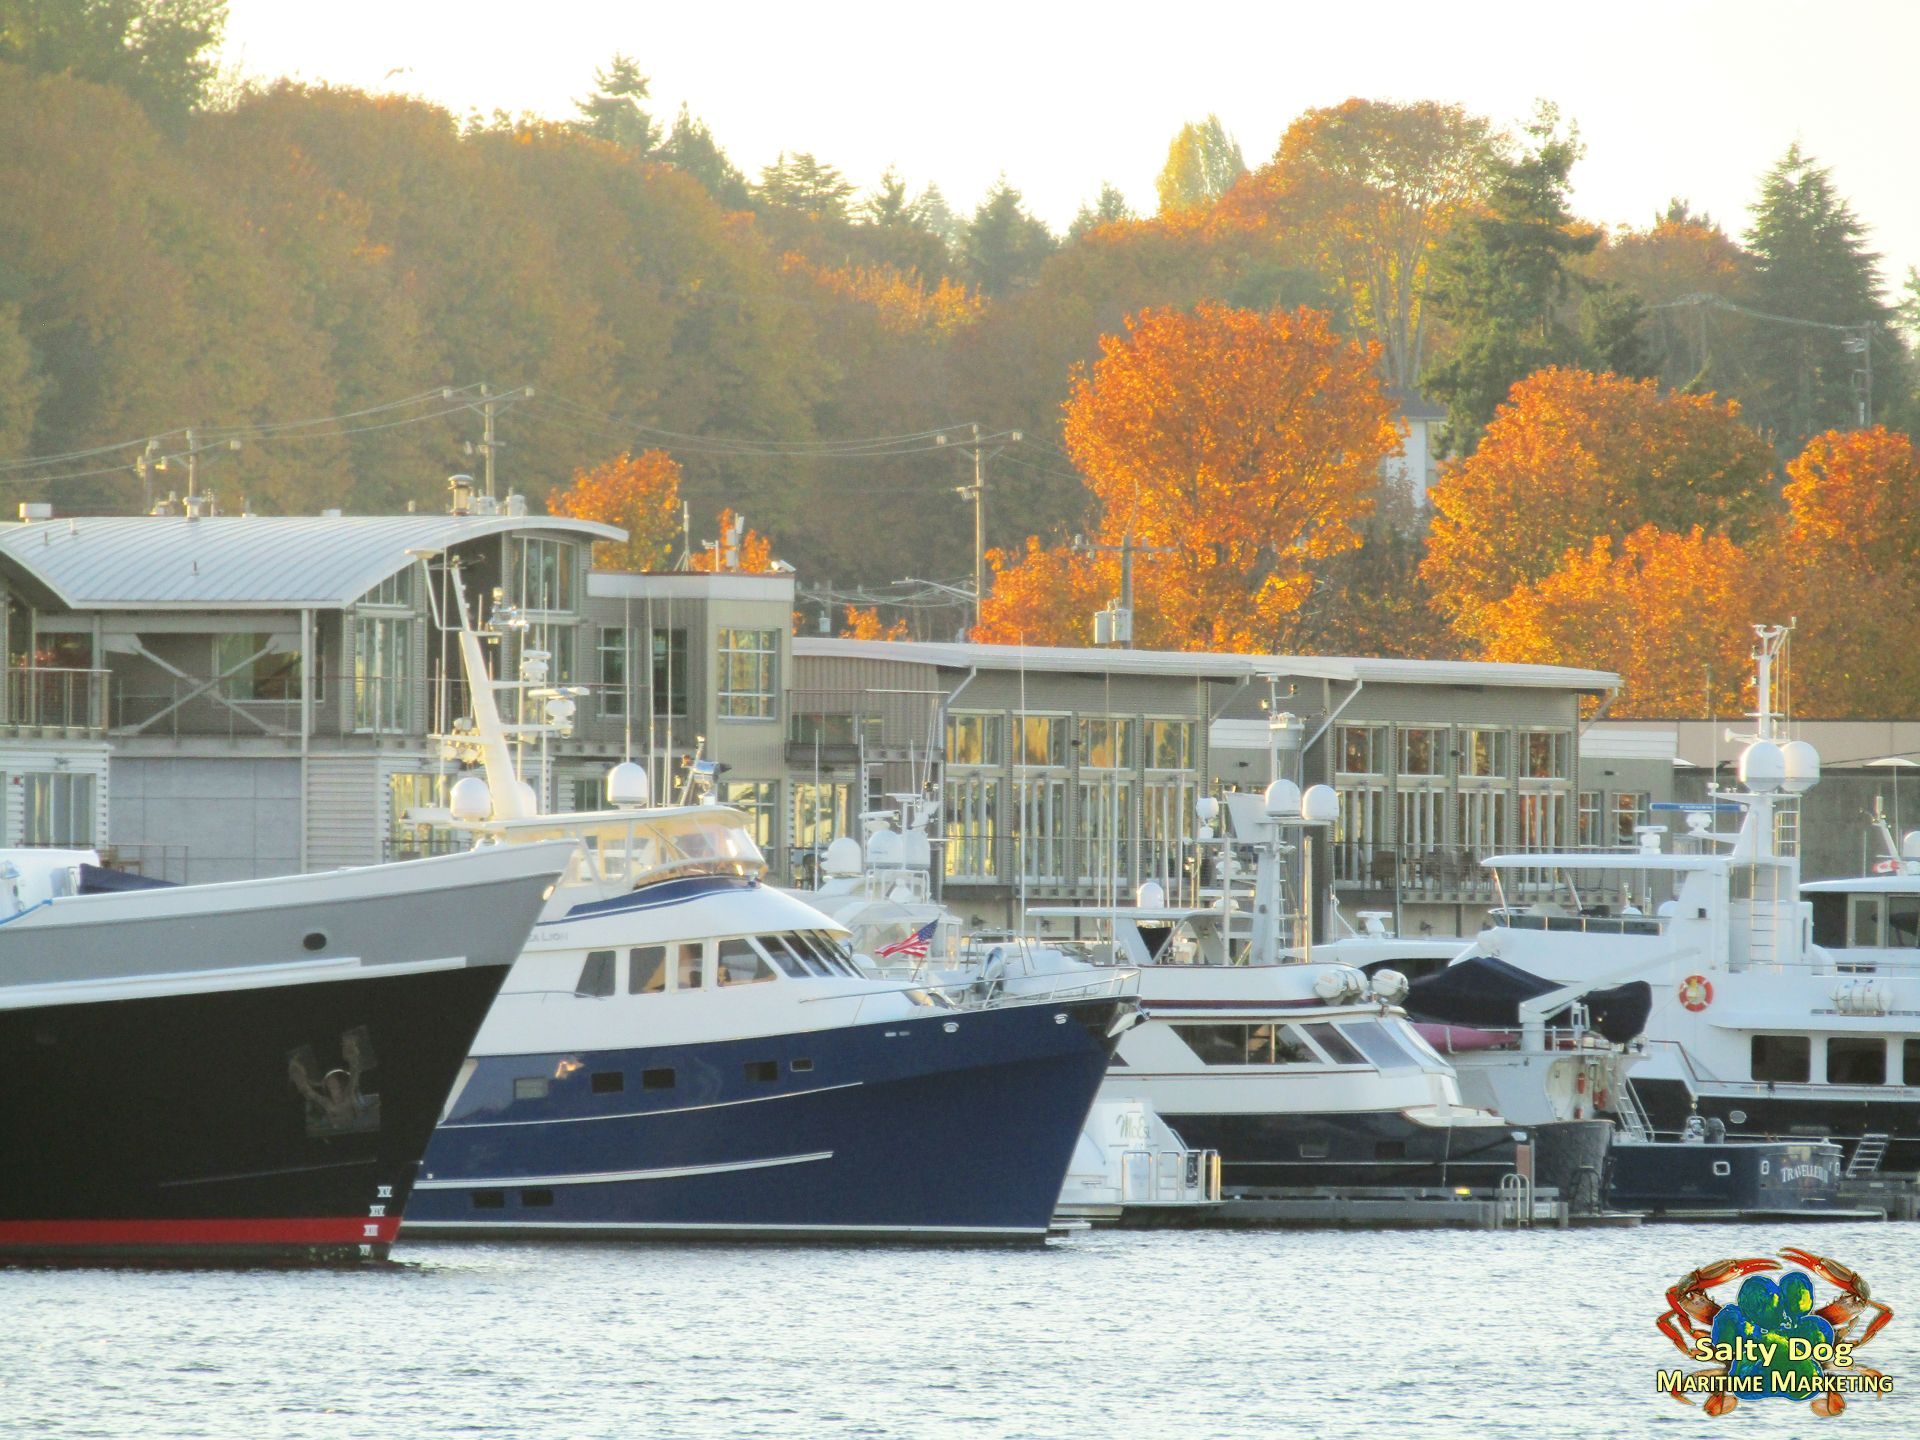 sbmc, salmon bay marine center, superyacht moorage, mega yacht